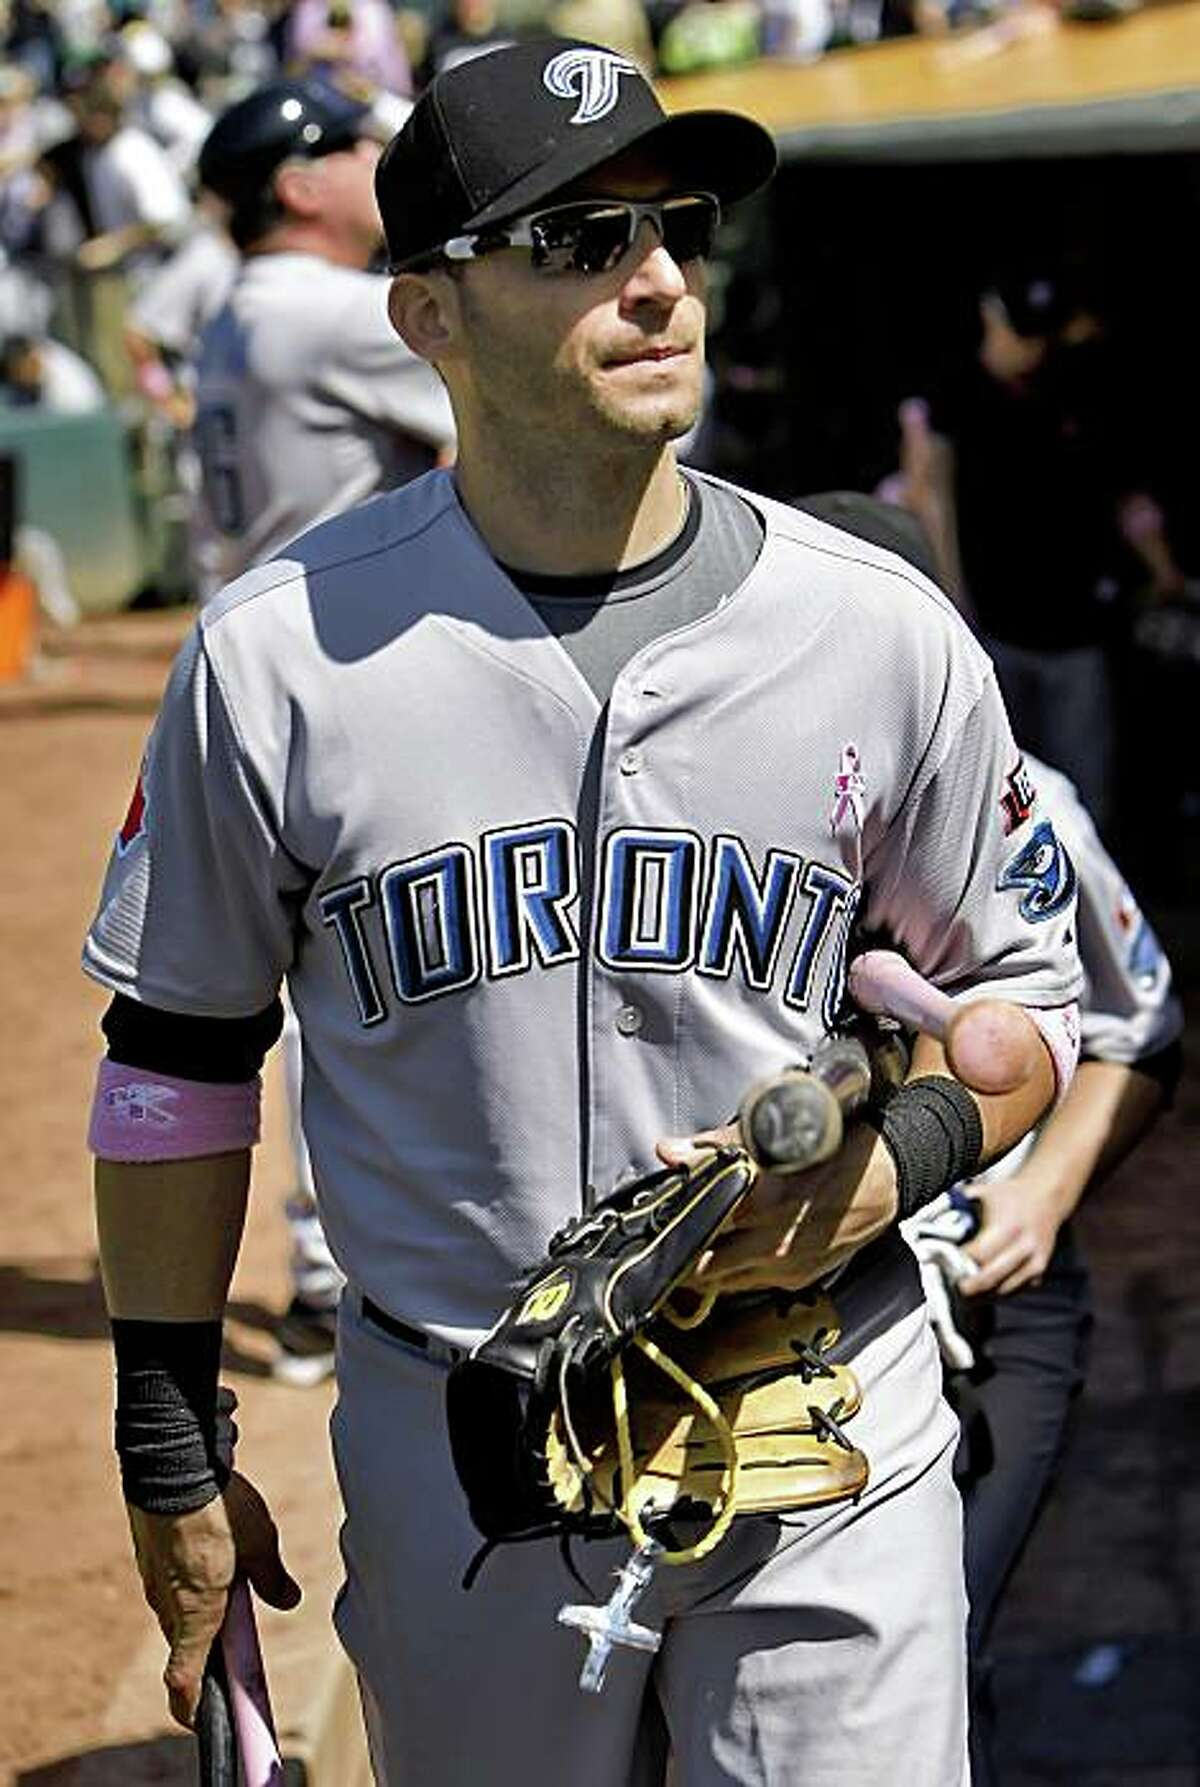 Former Oakland Athletic, Marco Scutaro, walks off the field after the Toronto Blue Jays defeated the A's carrying his equipment and a little crucifix fashioned from plastic rope and tin foil. The crucifix was given to Scutaro by the grounds crew at the Coliseum after Scutaro lost his gold crucifix during a game Friday night. The Oakland Athletics played the Toronto Blue Jays at the Oakland-Alameda County Coliseum in Oakland, Calif., on Sunday, May 10, 2009. The Blue Jays won the game 5-0.